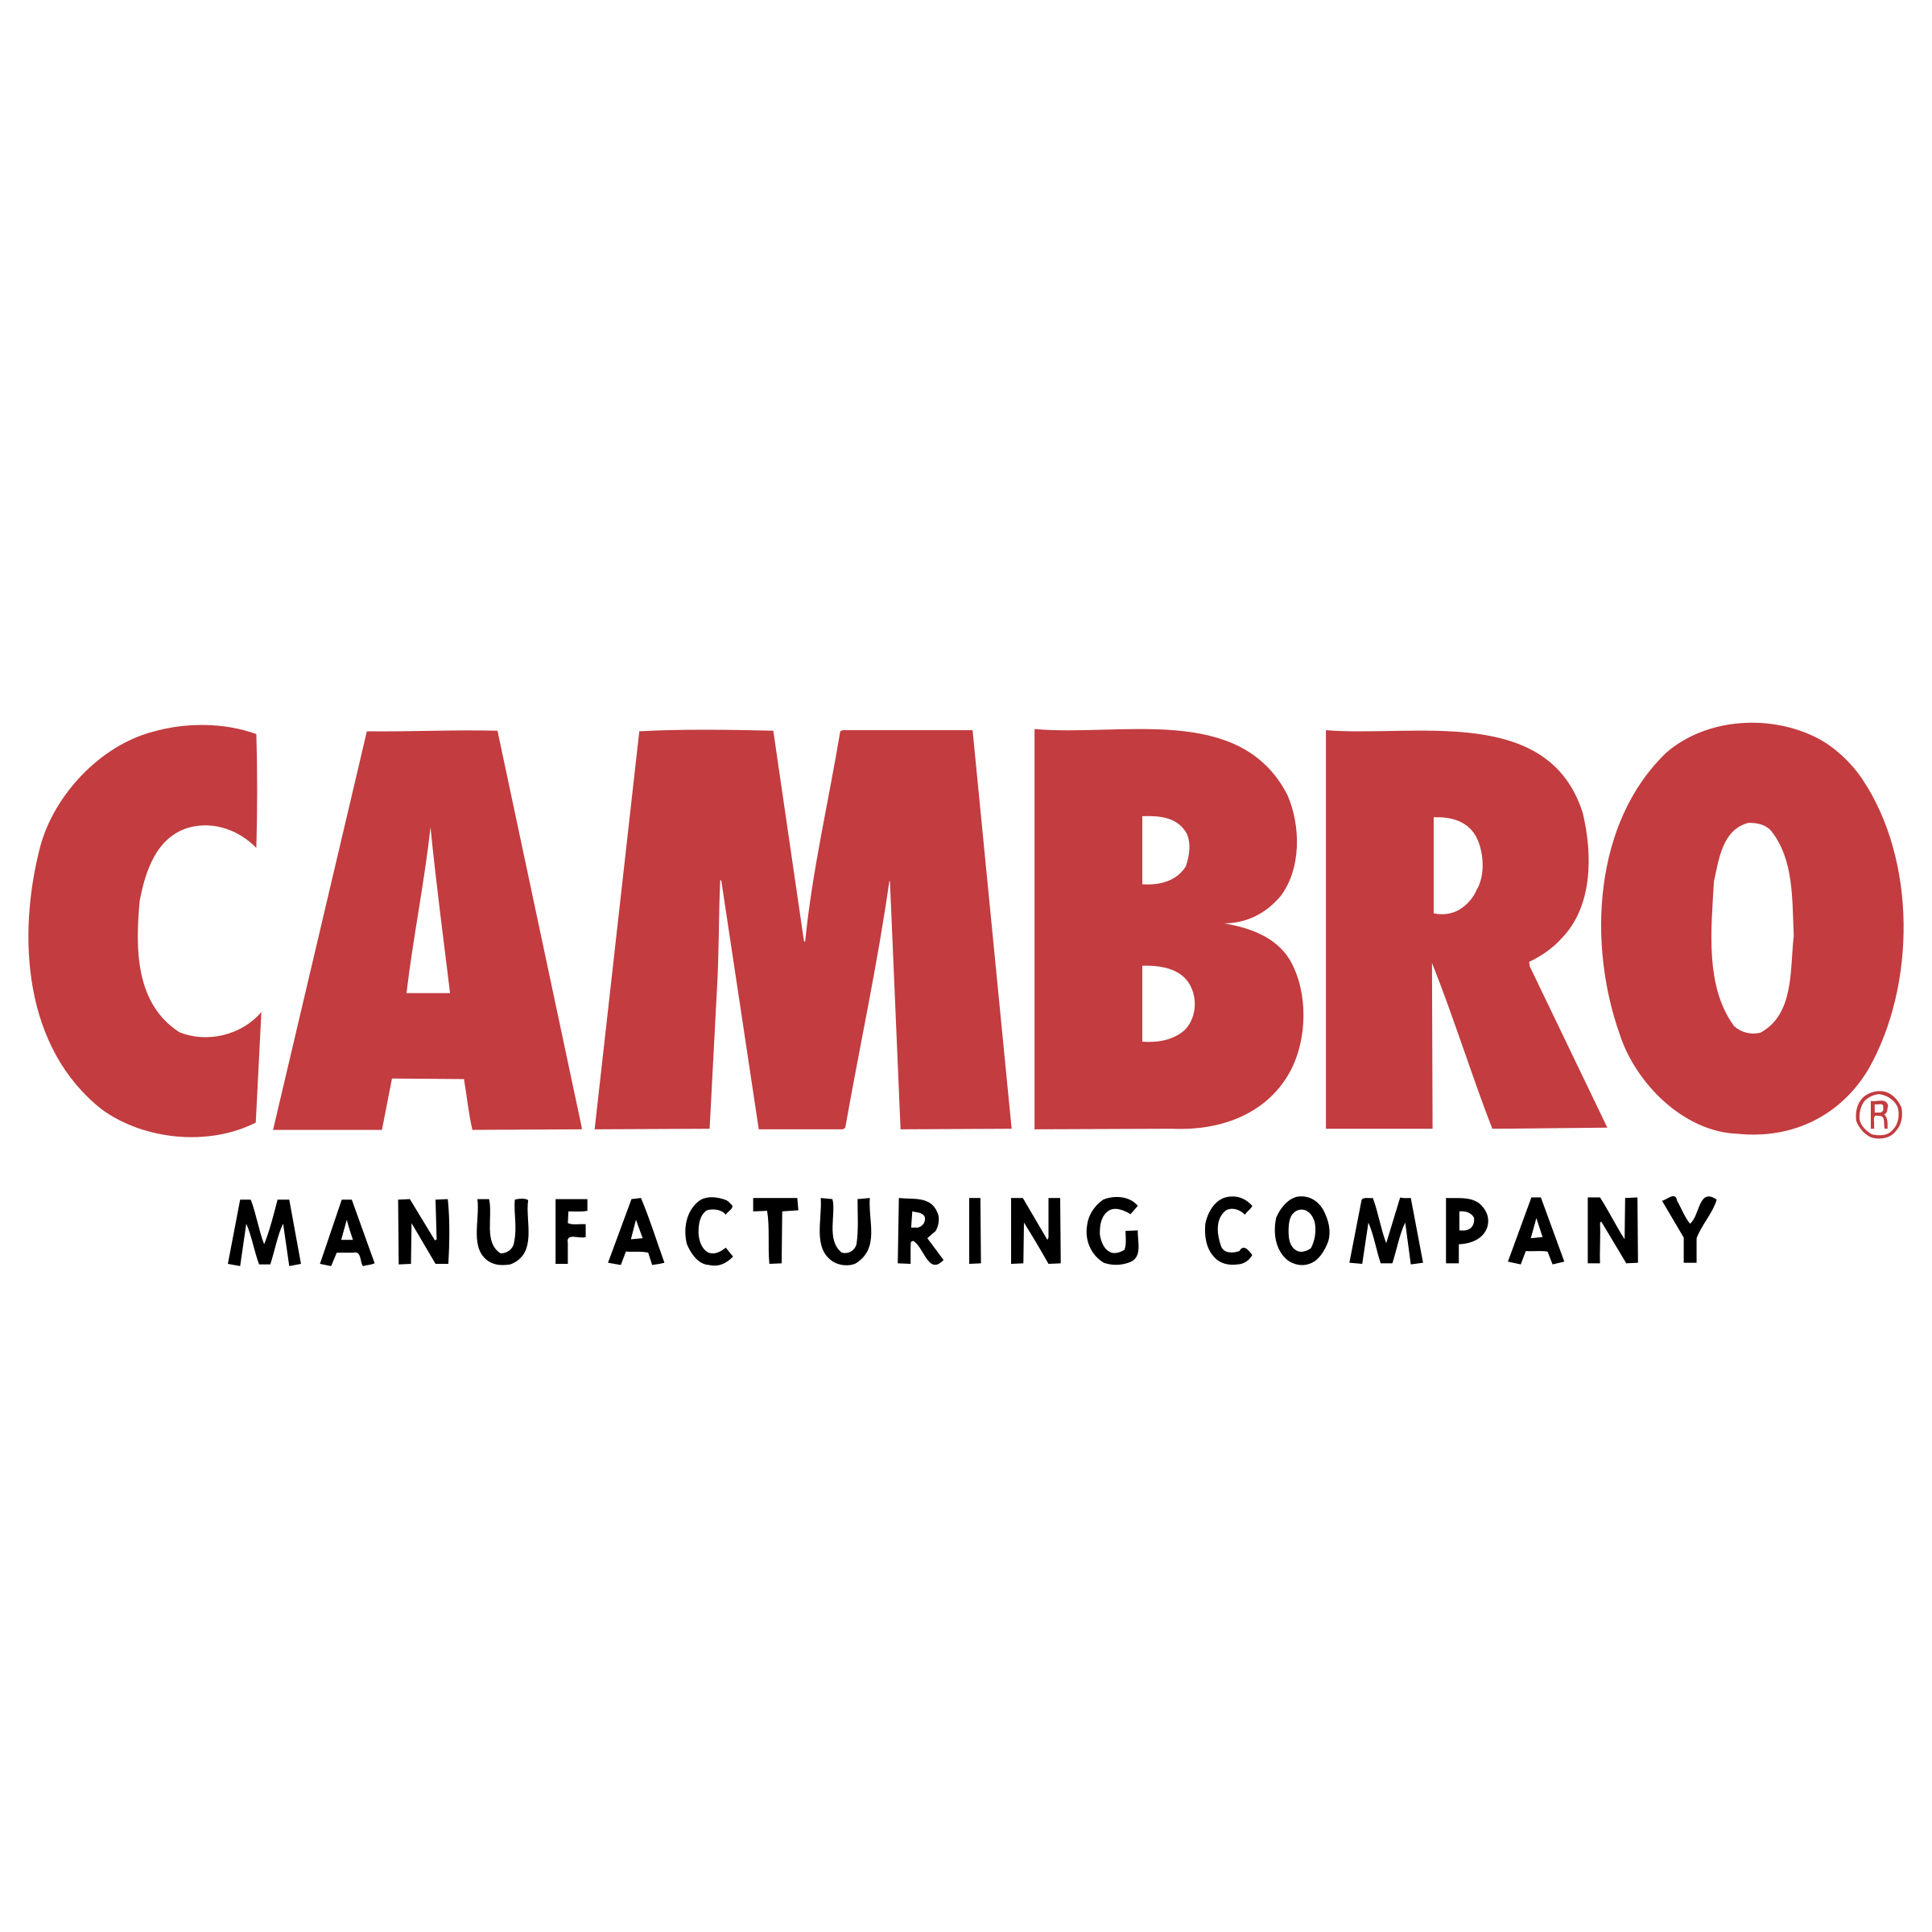 Cambro Logo PNG Transparent & SVG Vector - Freebie Supply